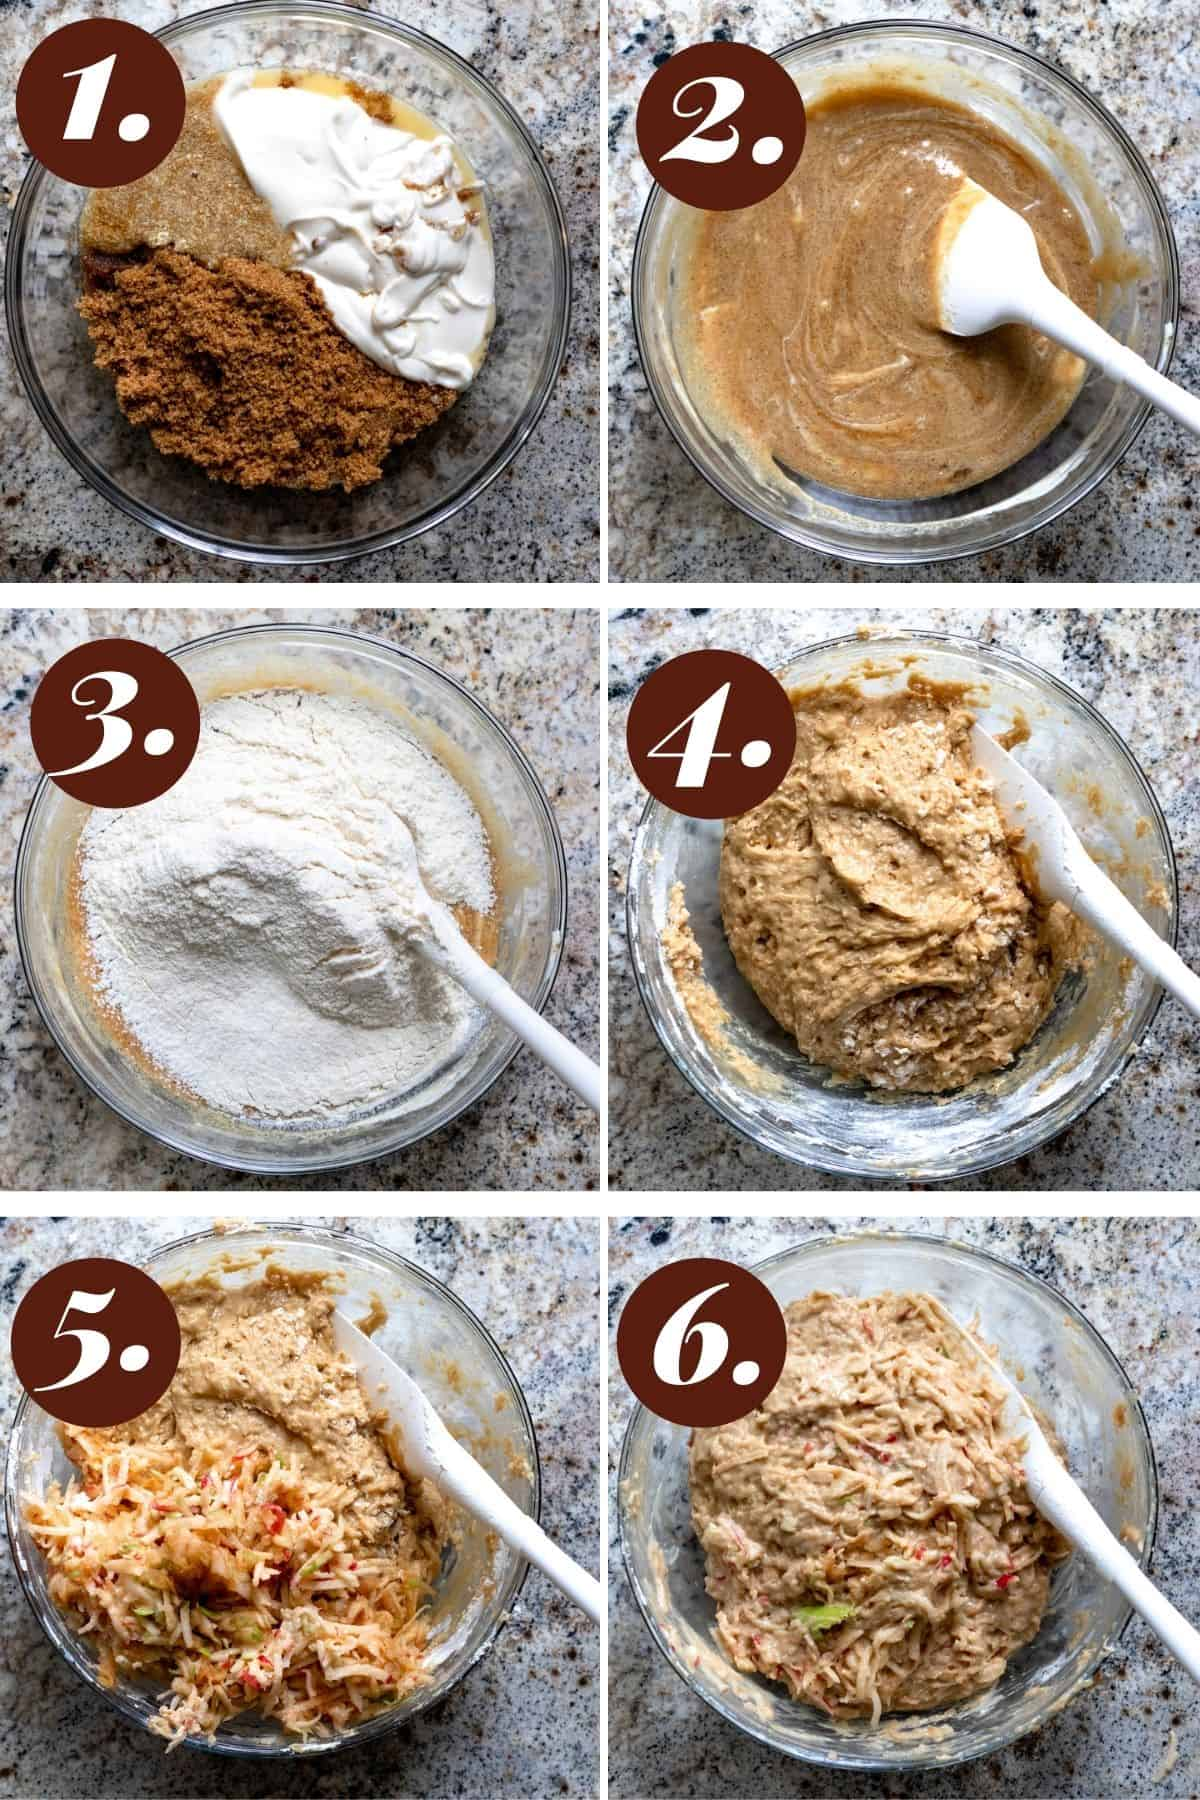 Six numbered photographs showing how to make the apple cake batter step by step.